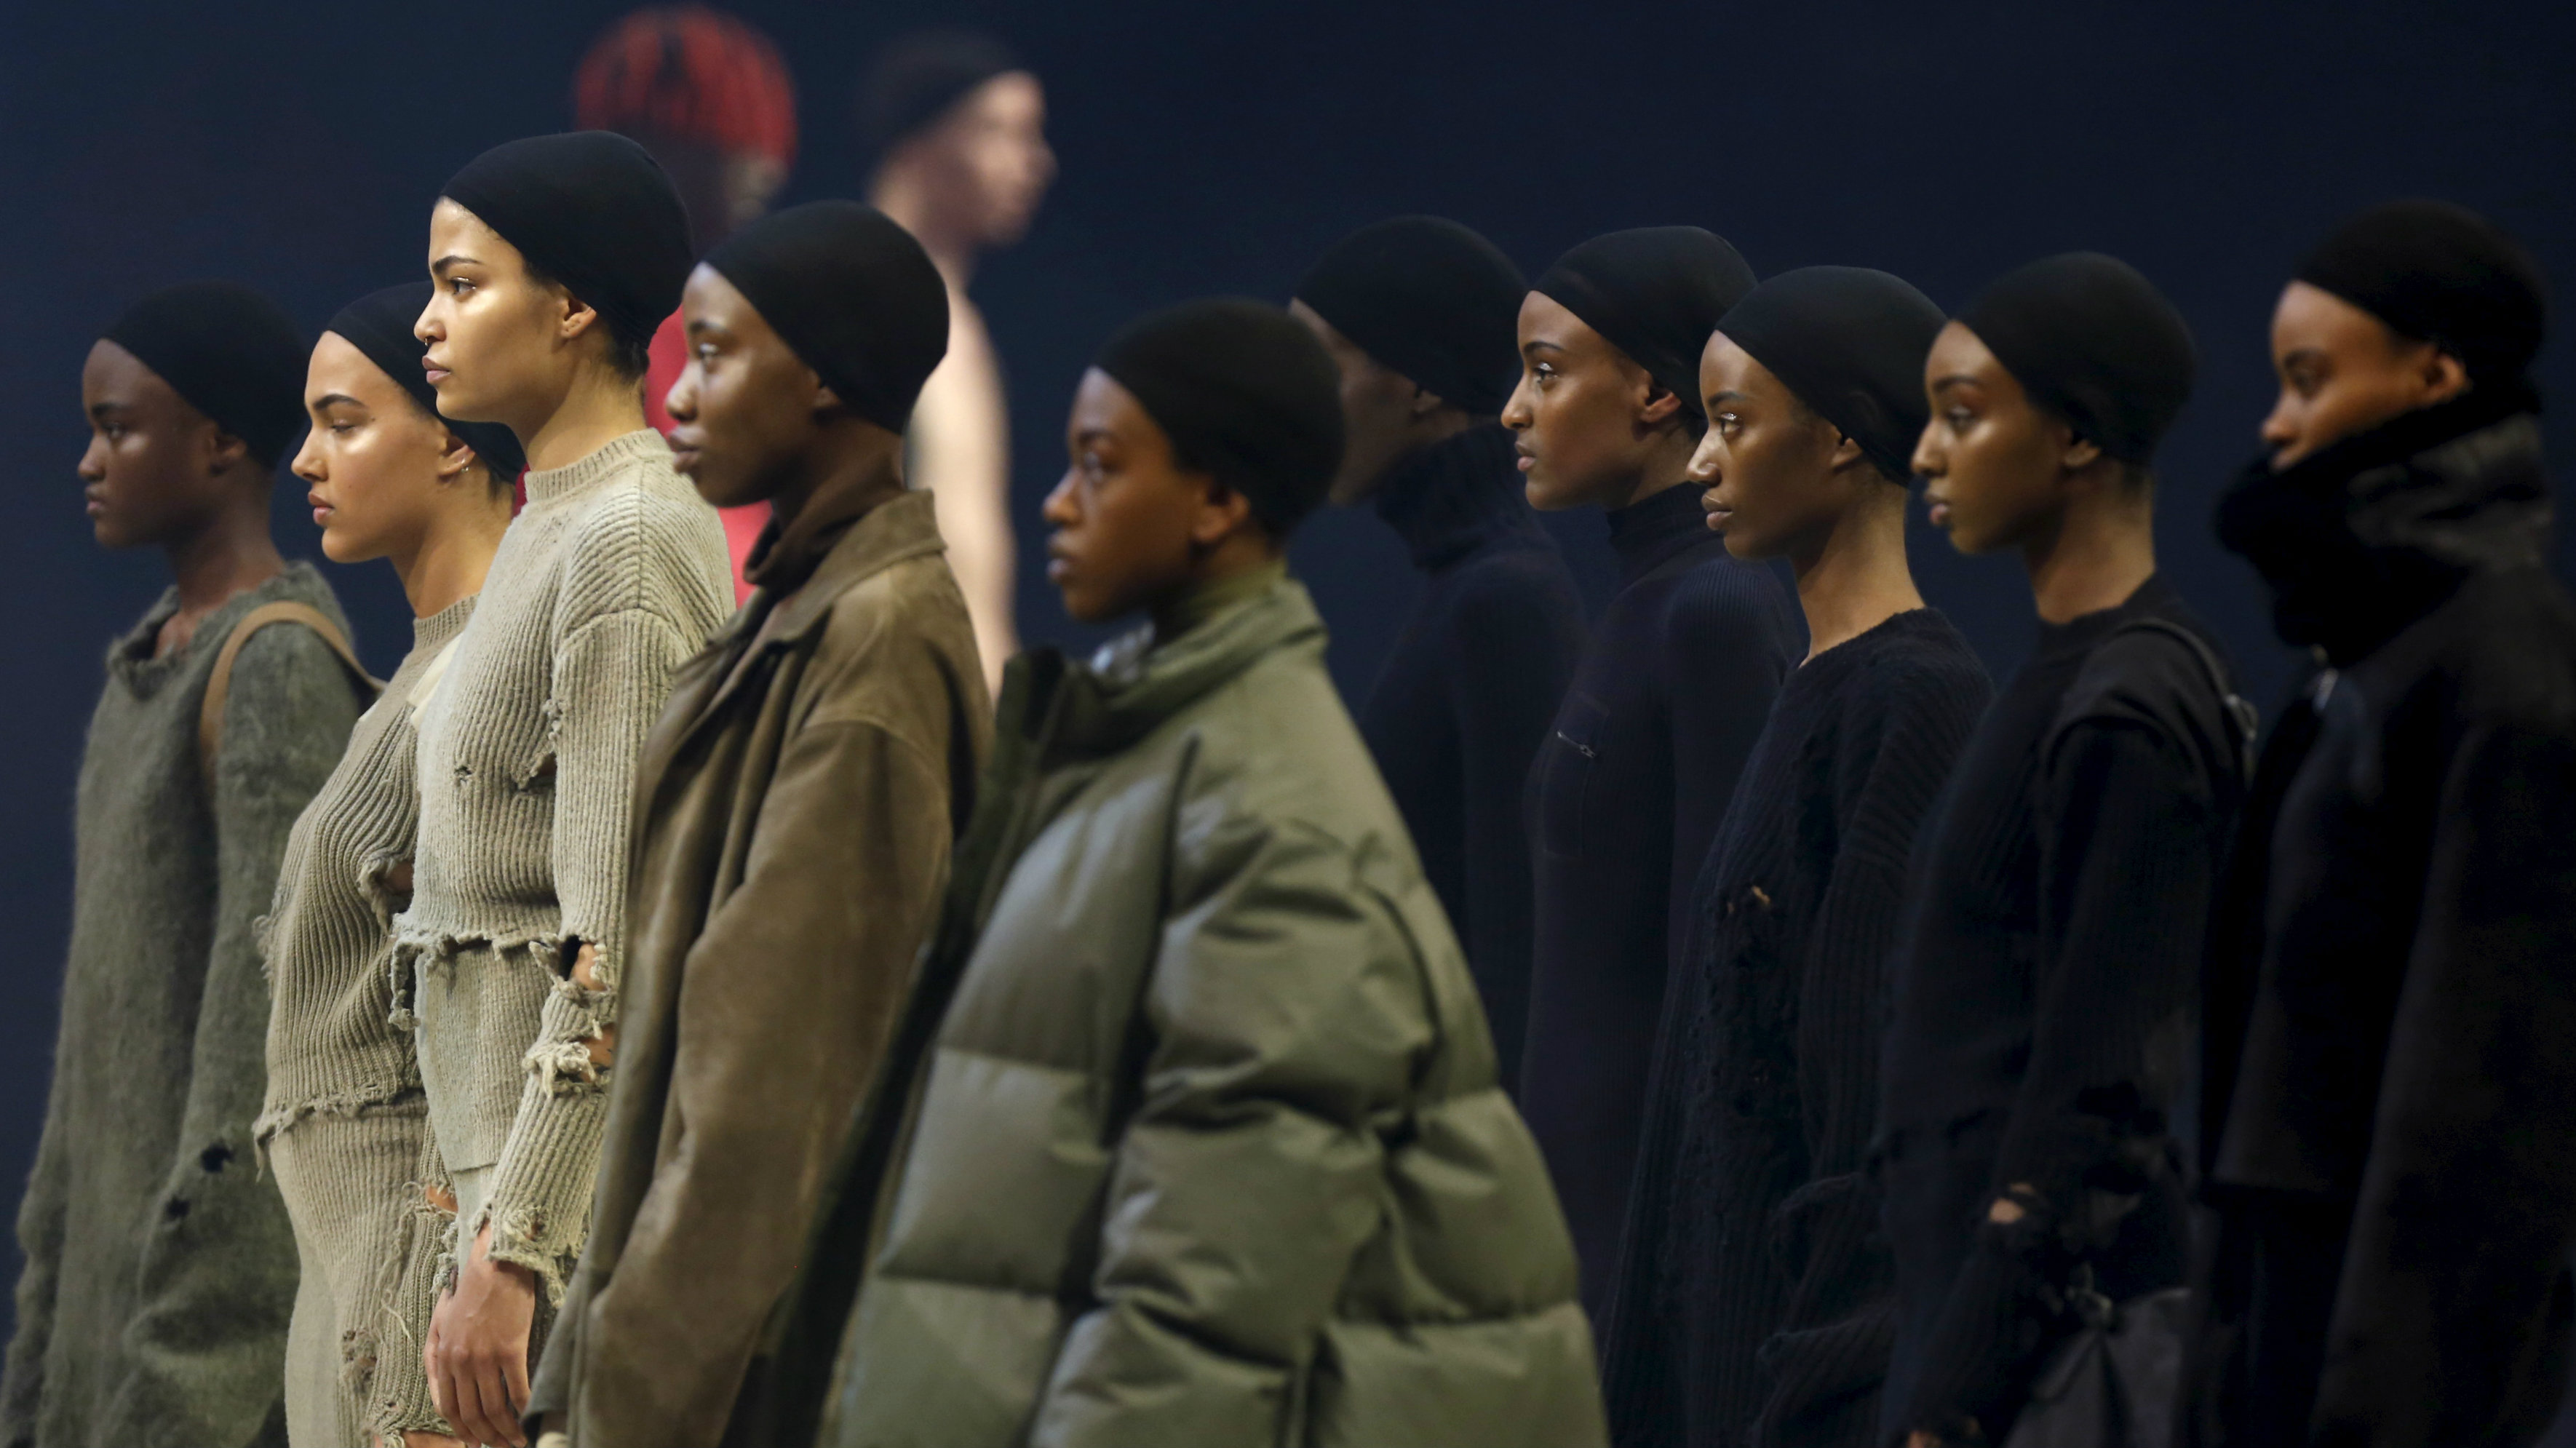 Models from Kanye's fashion week line